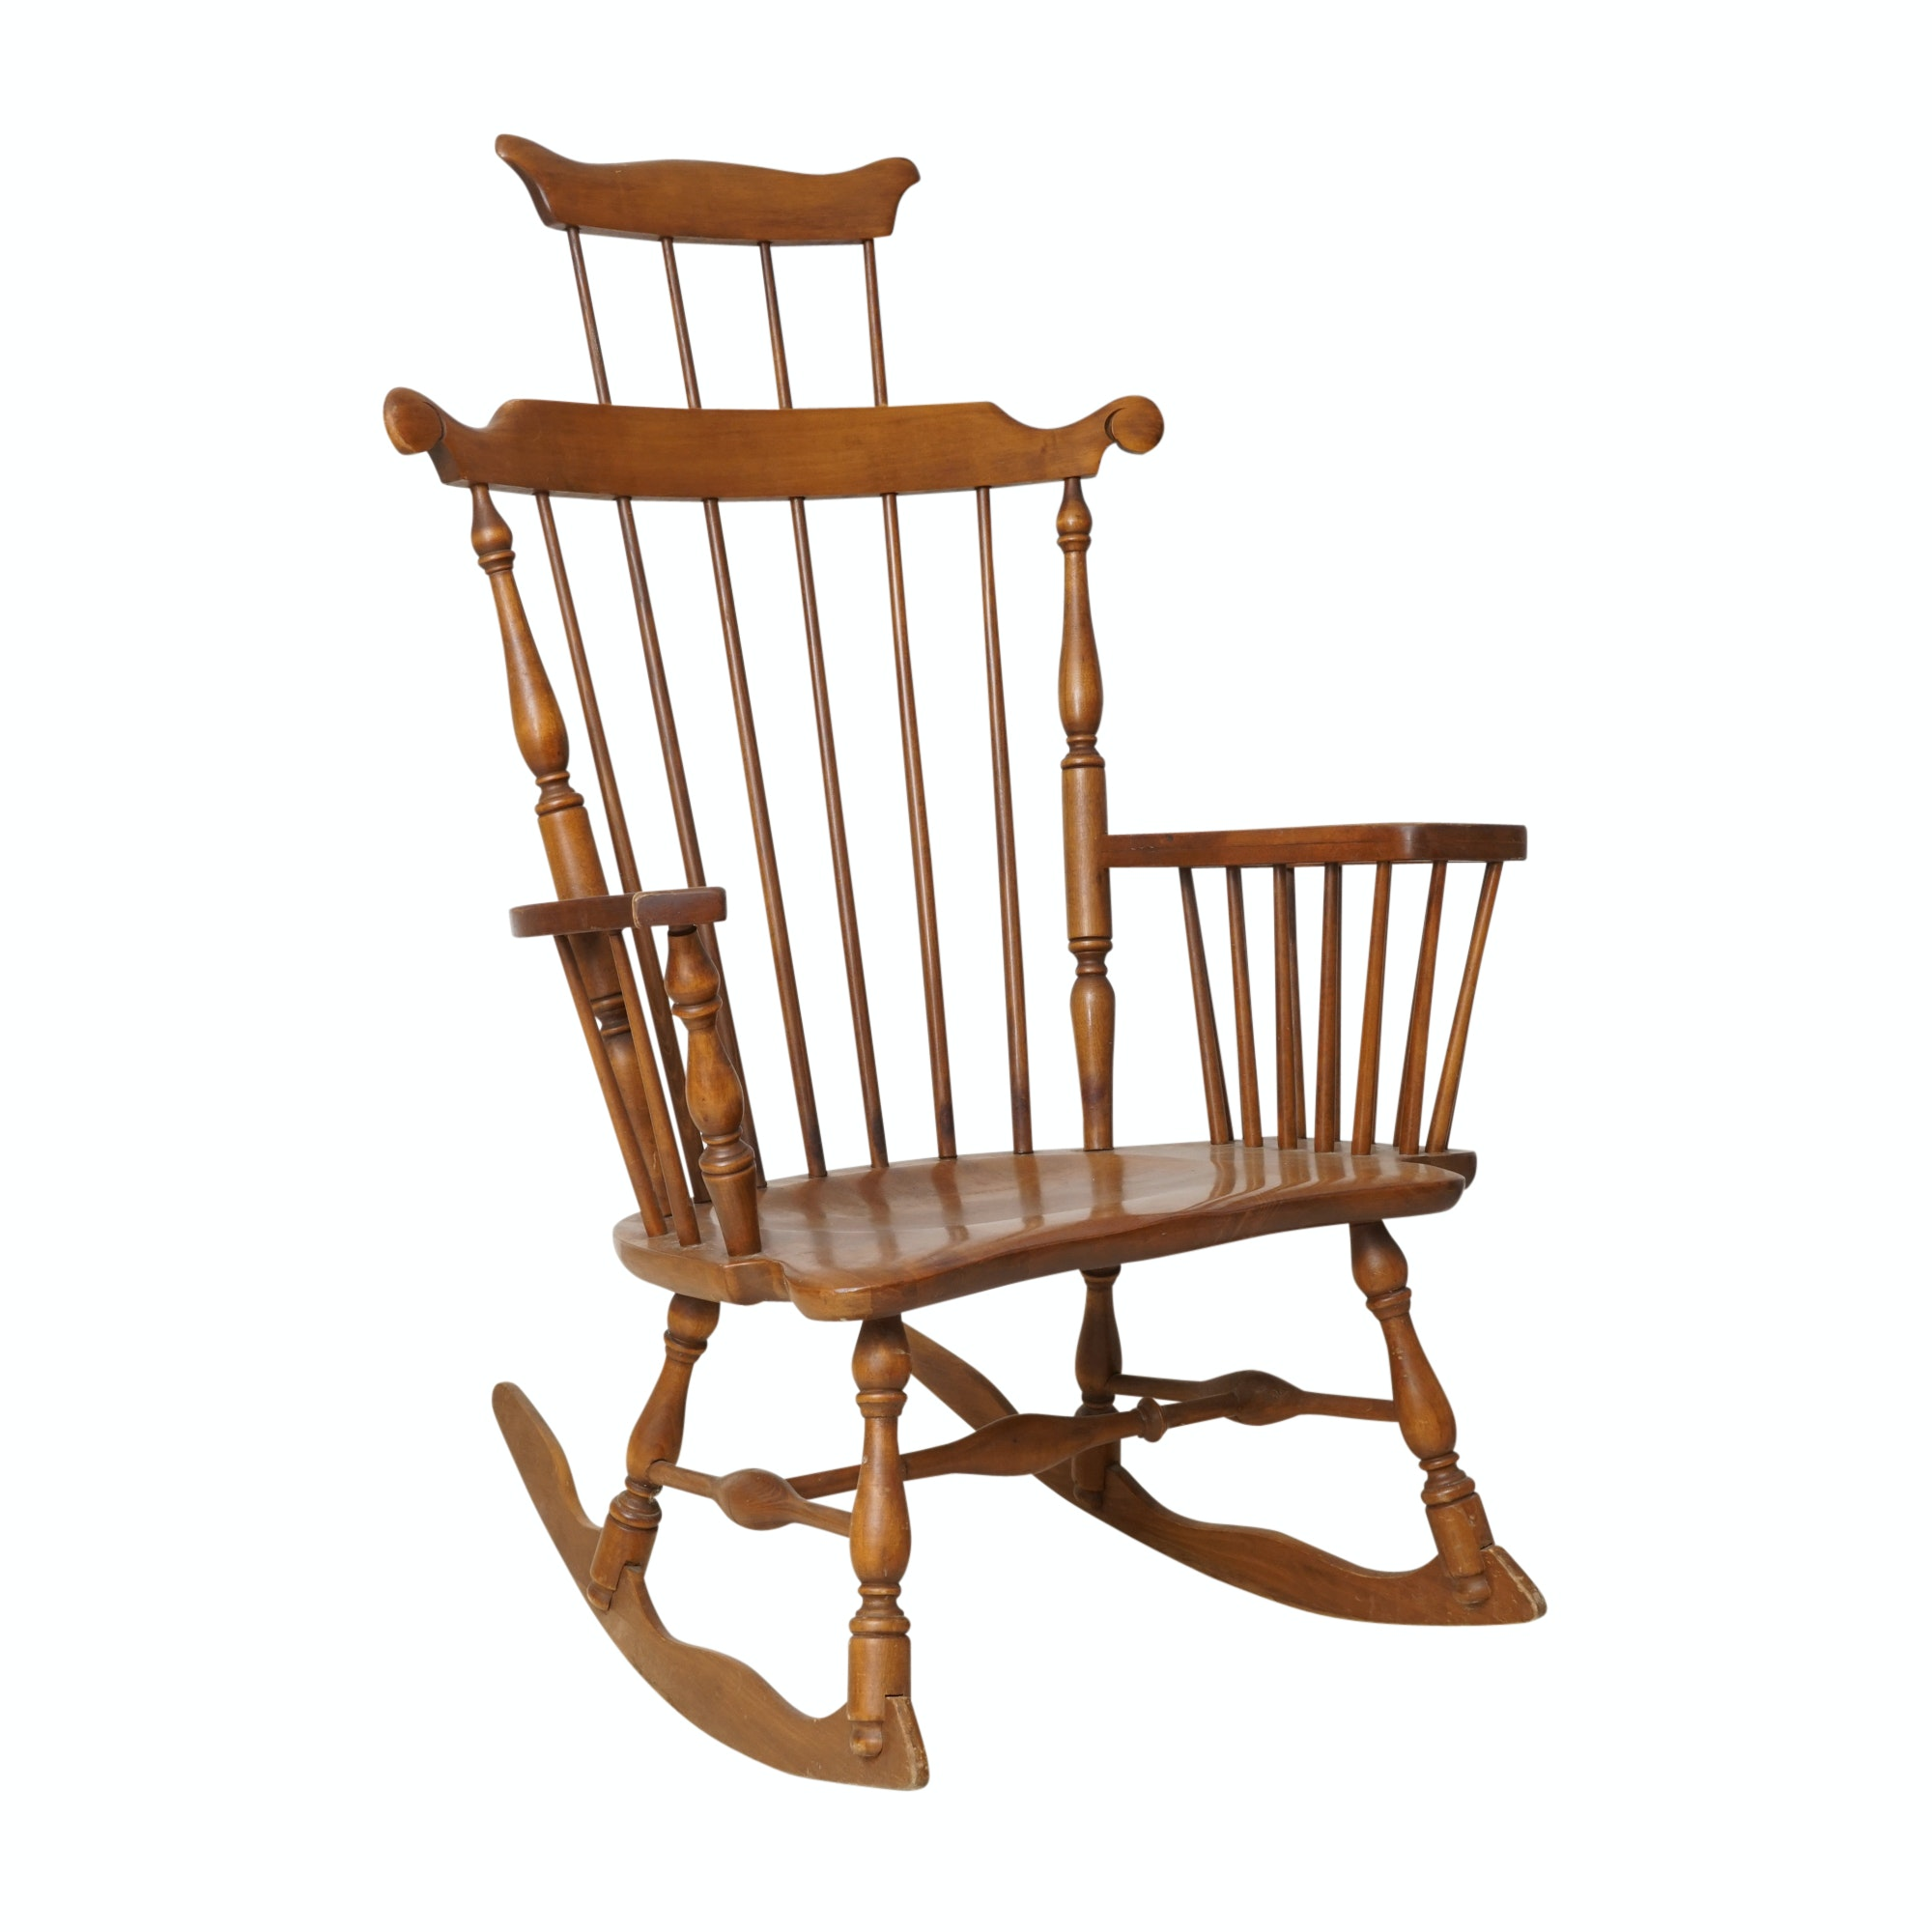 Maple Comb-Back Windsor Rocking Chair with Storage